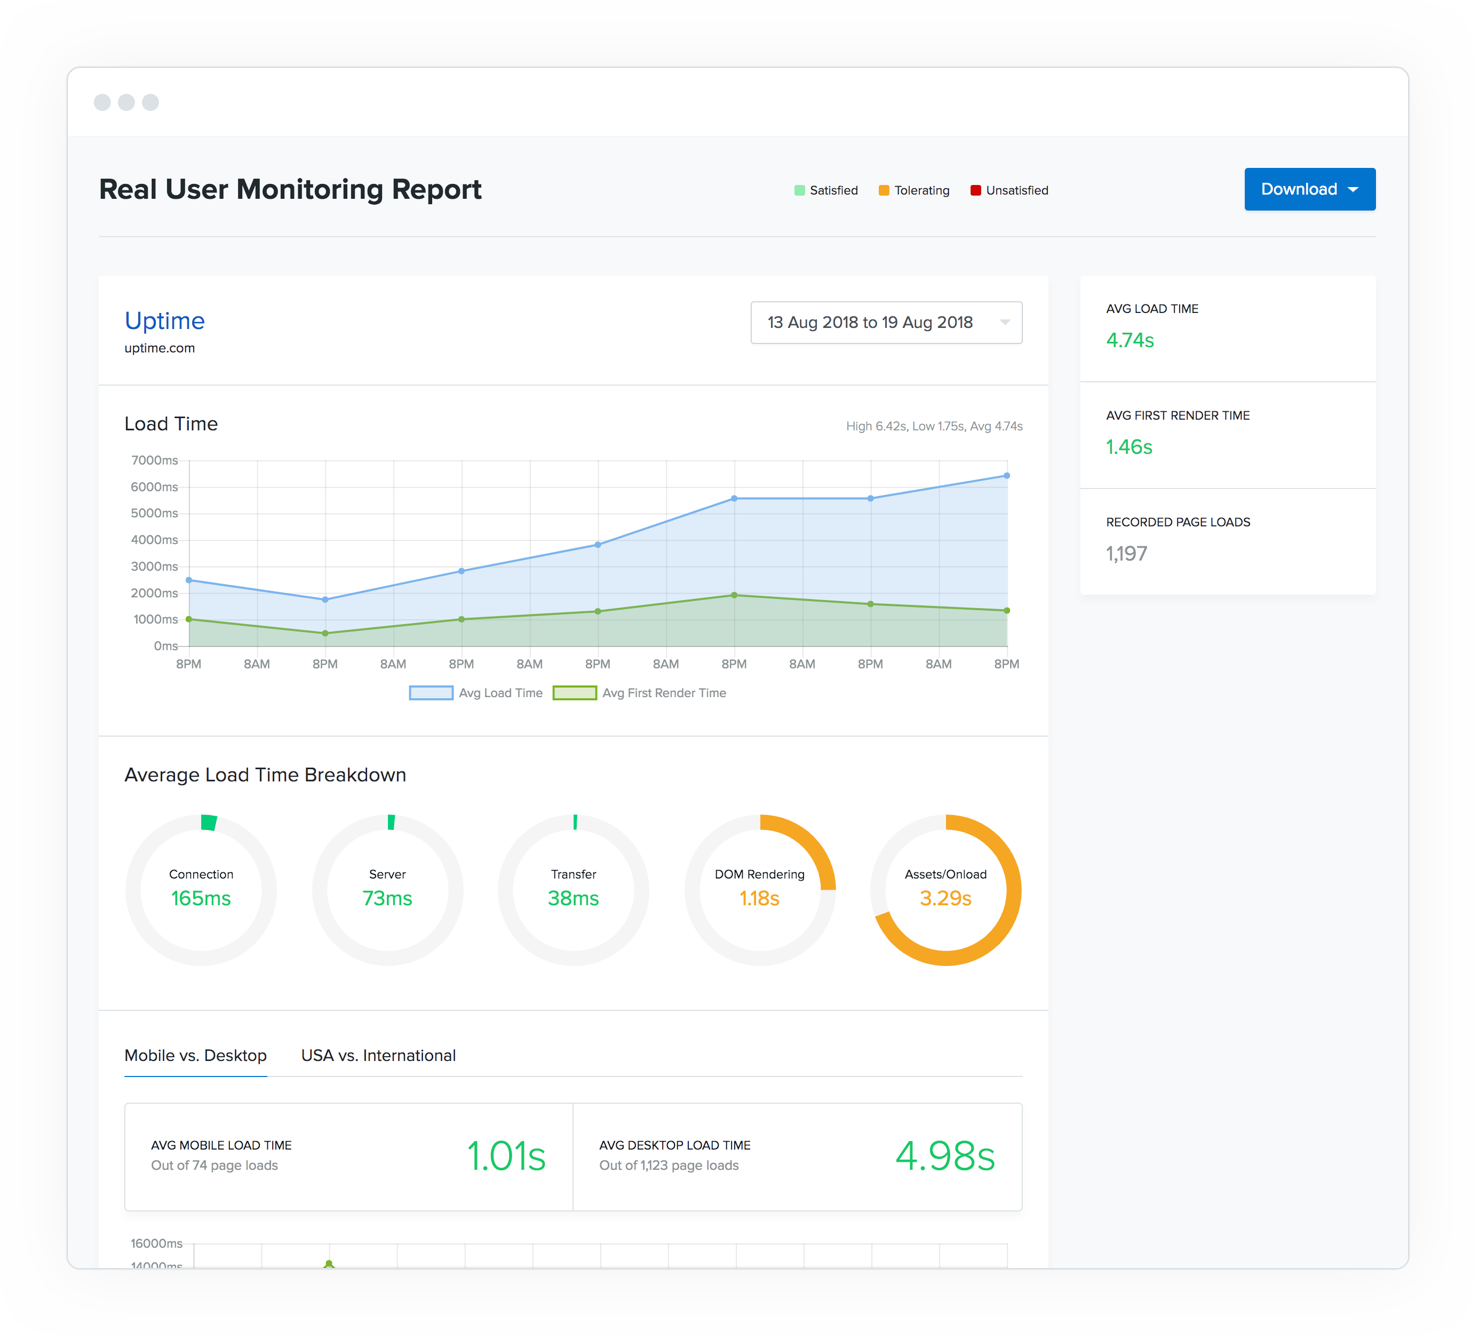 Real User Monitoring (RUM) - The Uptime.com RUM checks provide real-user insights, generating comprehensive metrics of every element on your site so you can provide an optimized and smooth user experience.